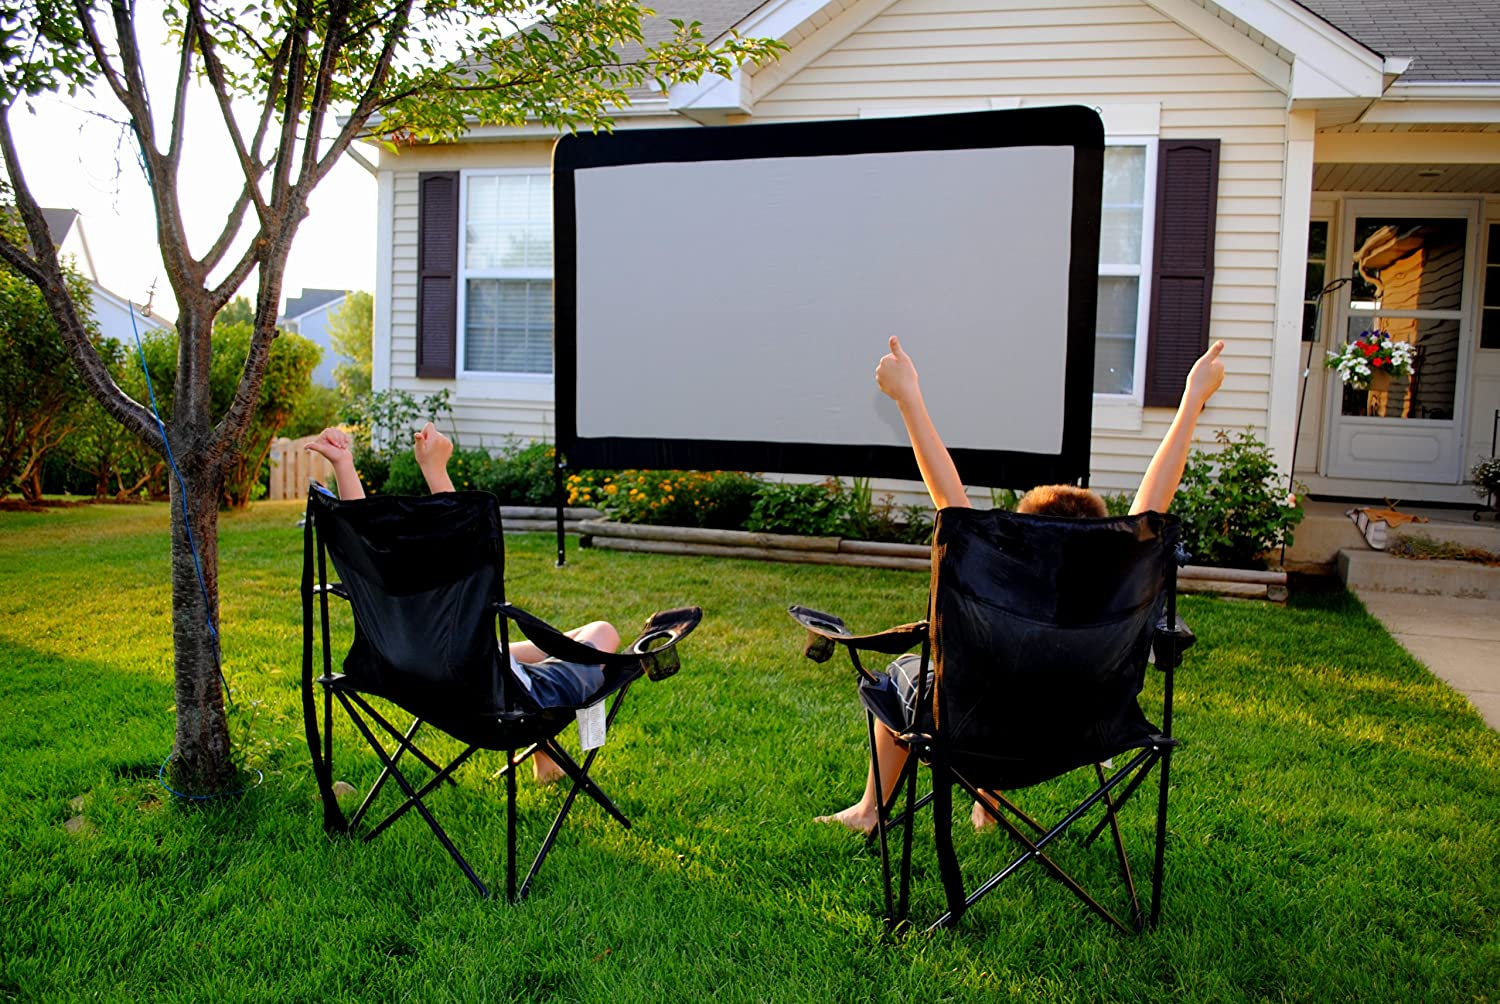 Bon Amazon.com: Backyard Outdoor Home Theater In A Box, Portable Dvd Projector  With Outdoor Movie Screen And Projector Stand!: Office Products